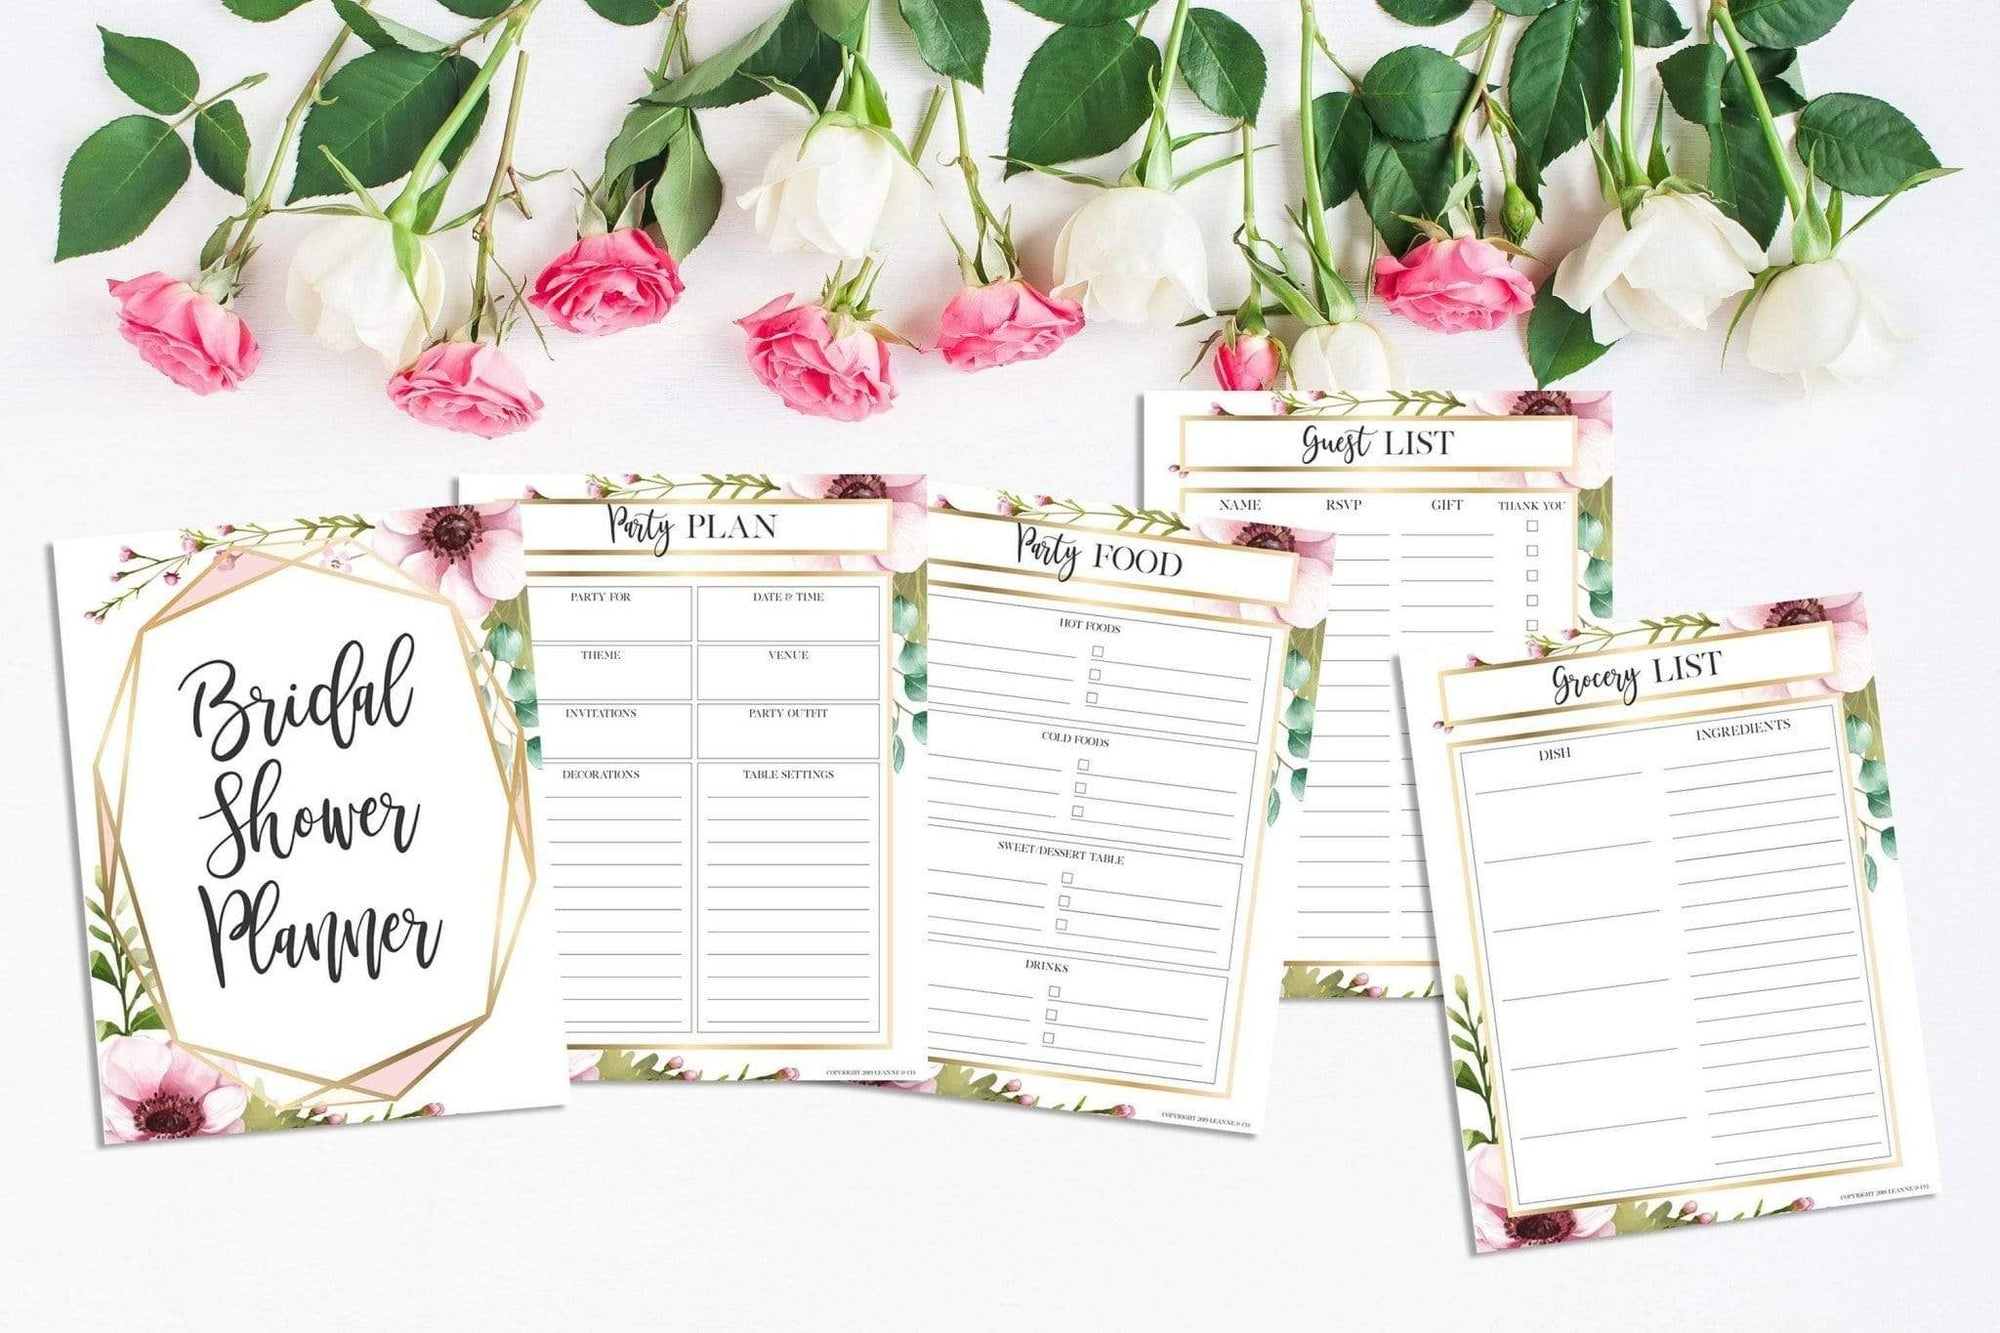 Leanne & Co. Instant Download Bridal Shower Party Planner, Instant Download